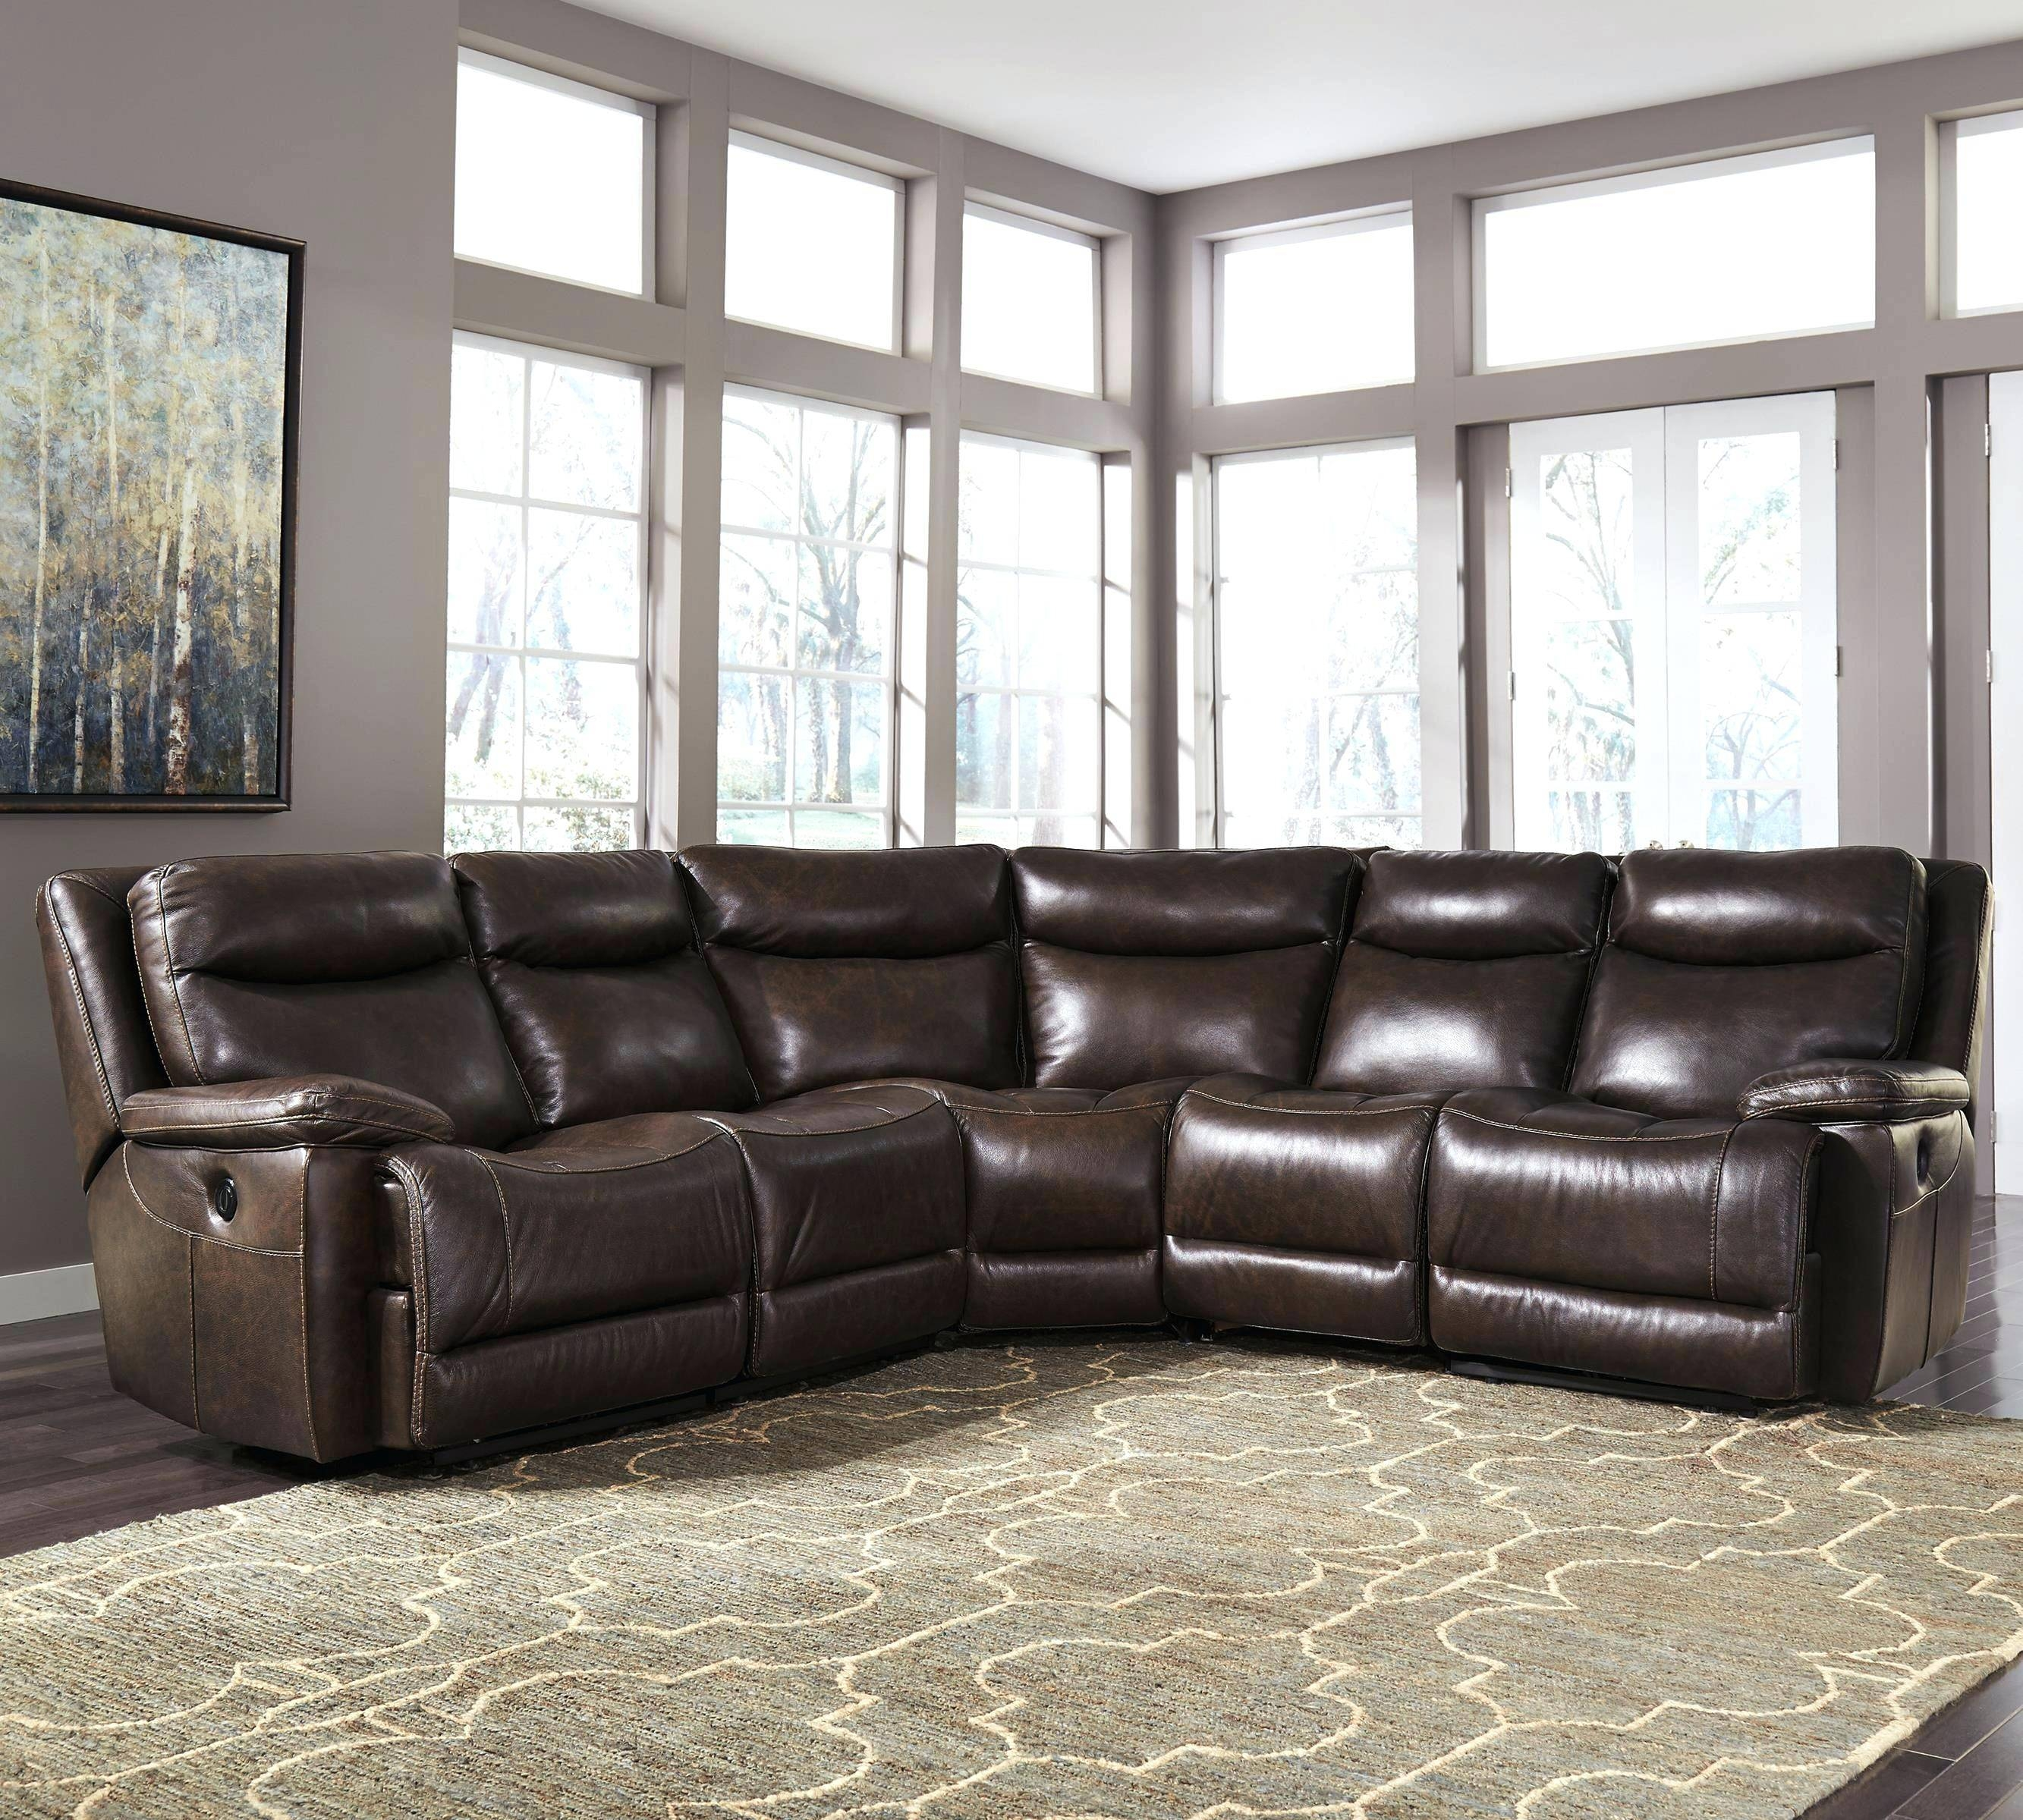 5 Piece Sectional Sofa Leather Medium Size Furniture5 Piece